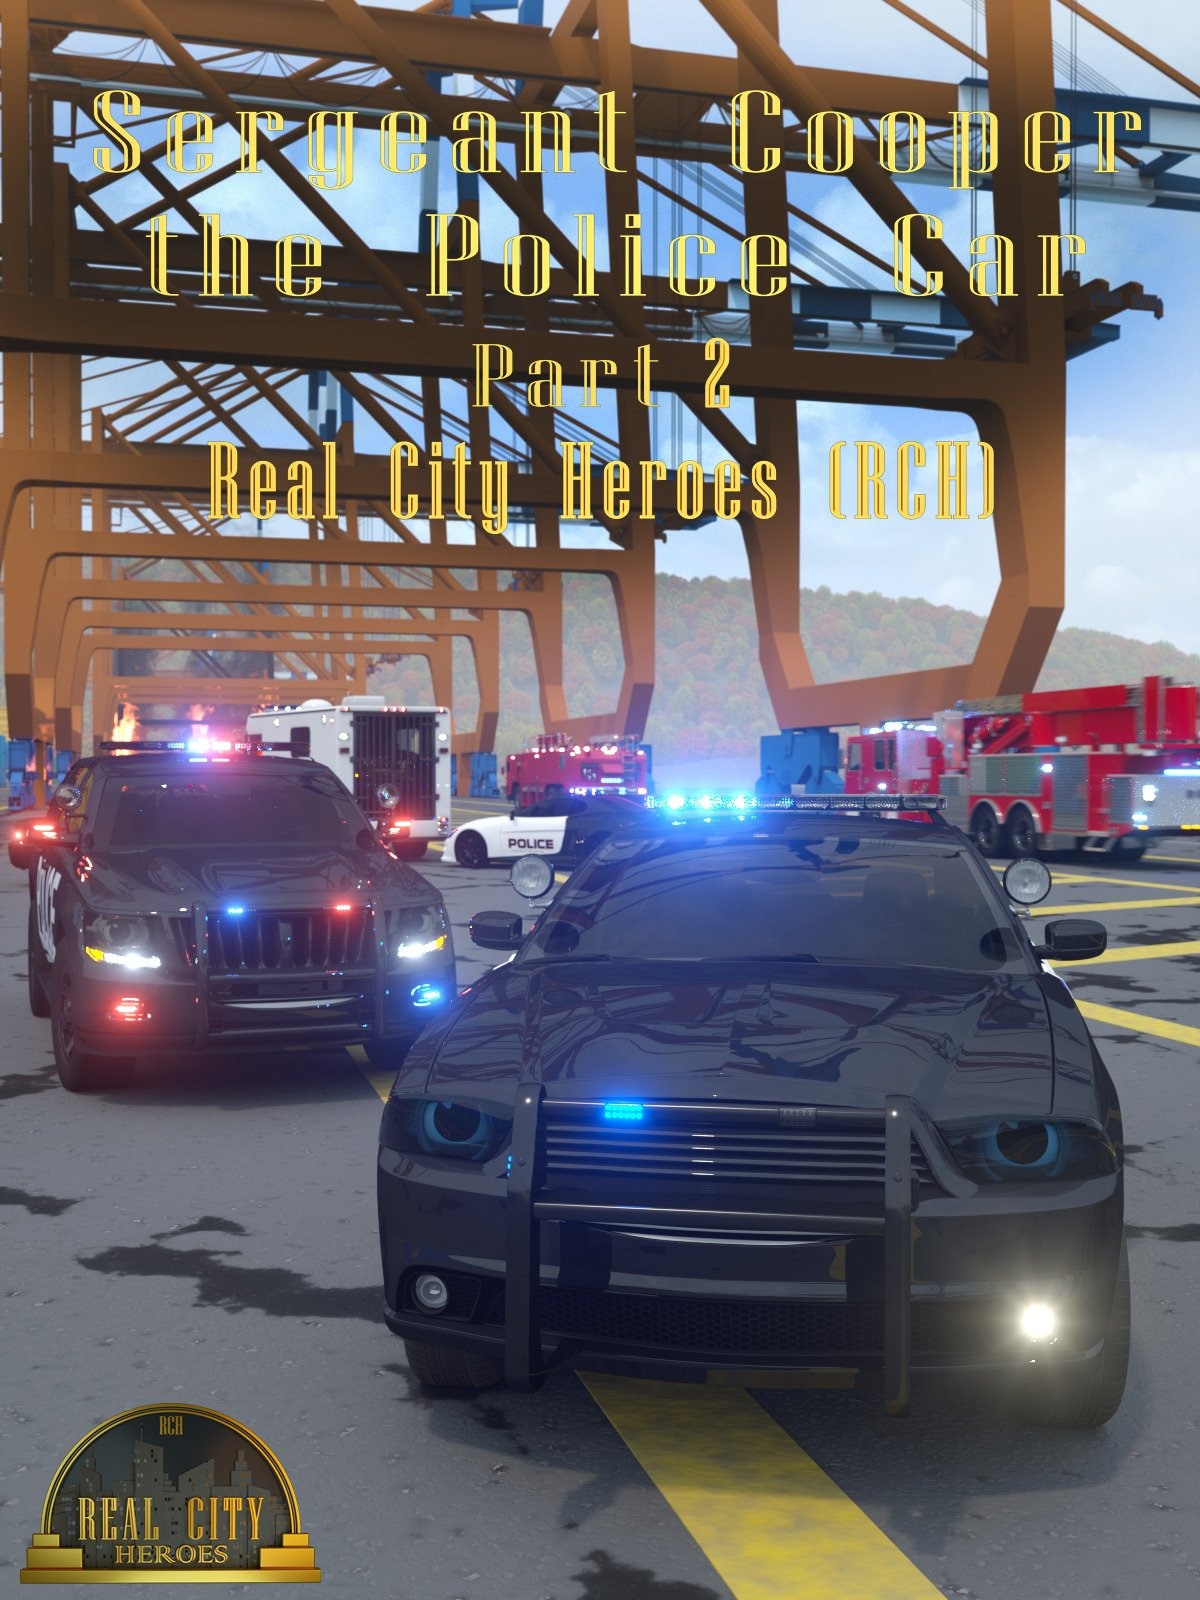 Sergeant Cooper the Police Car Part 2 - Real City Heroes (RCH) on Amazon Prime Video UK